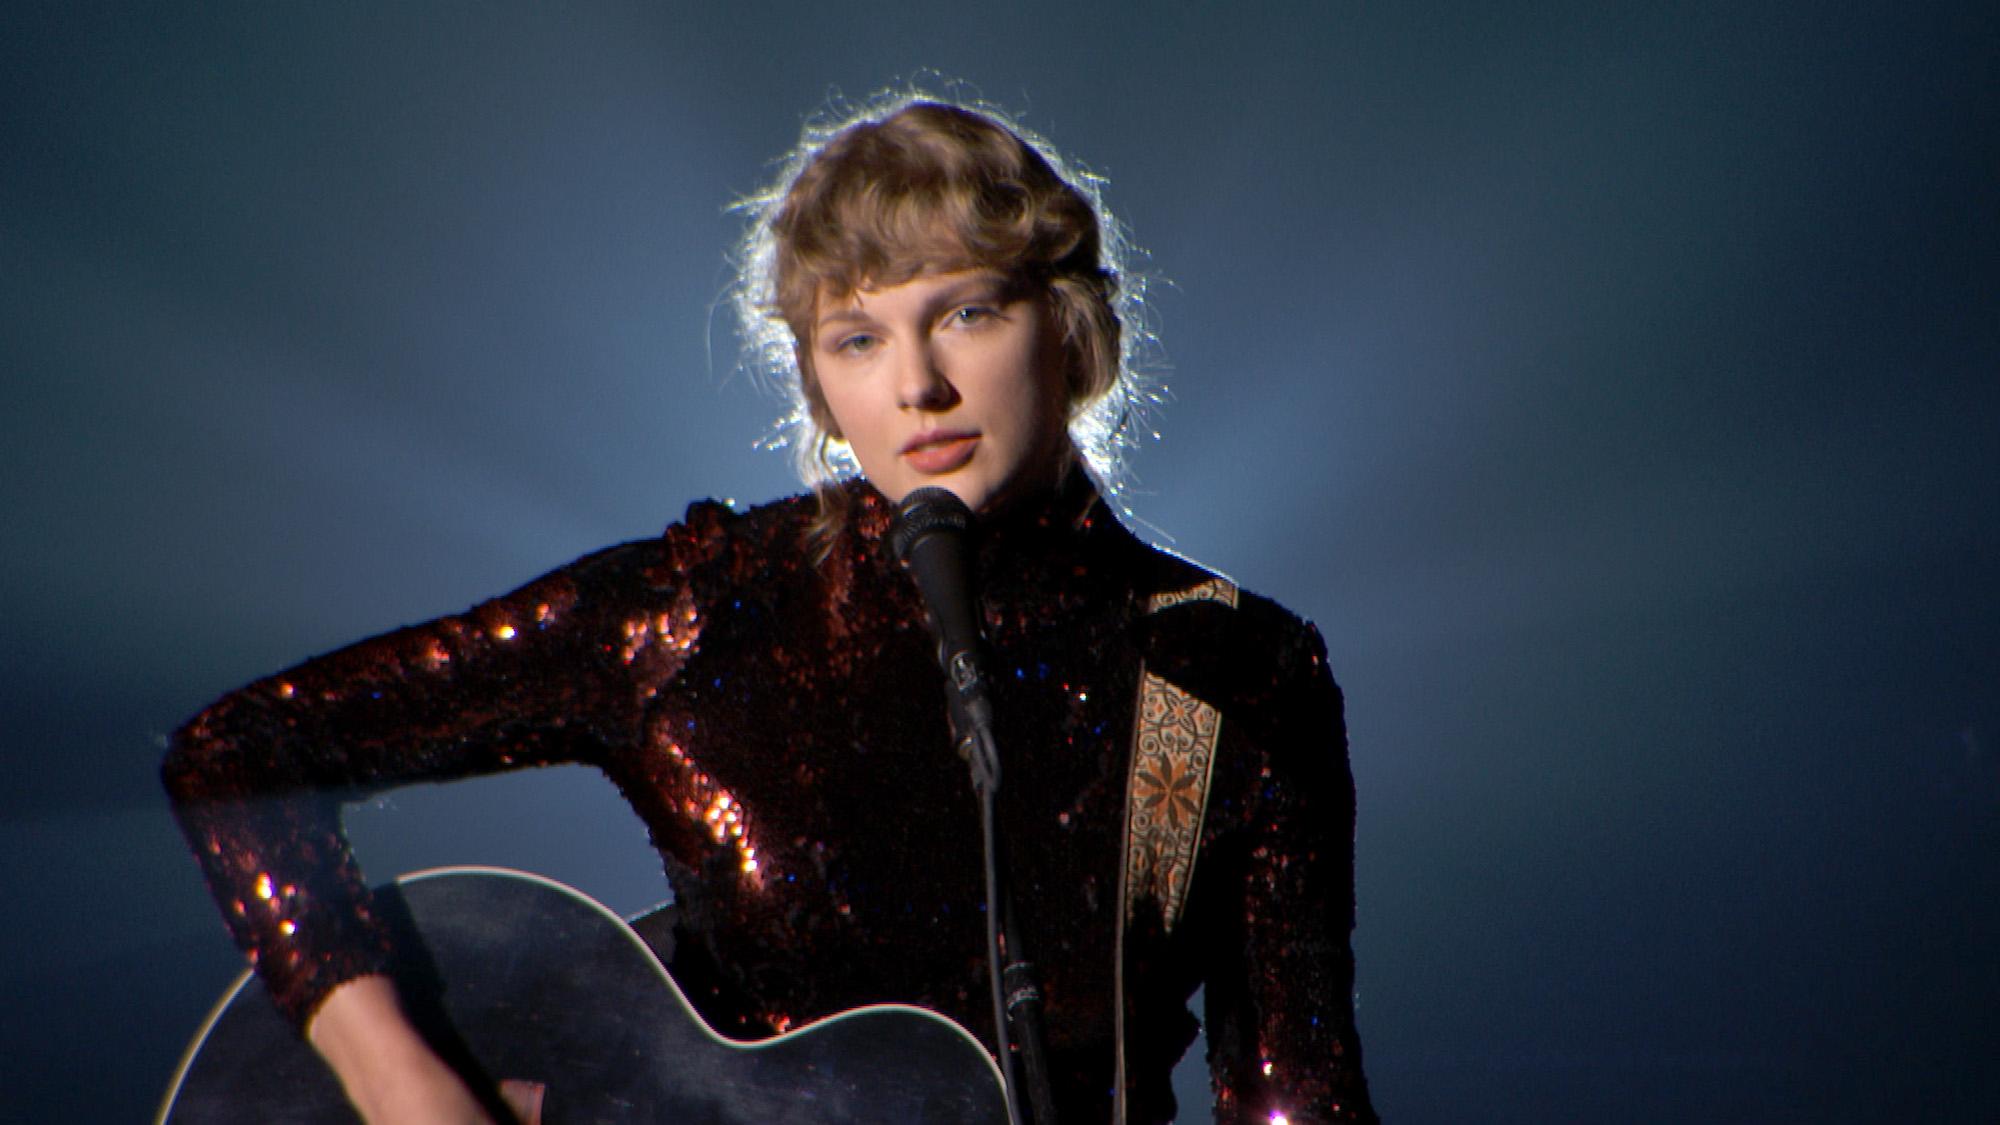 Taylor Swift performing at the 55th Academy of Country Music Awards on Sept. 16, 2020.